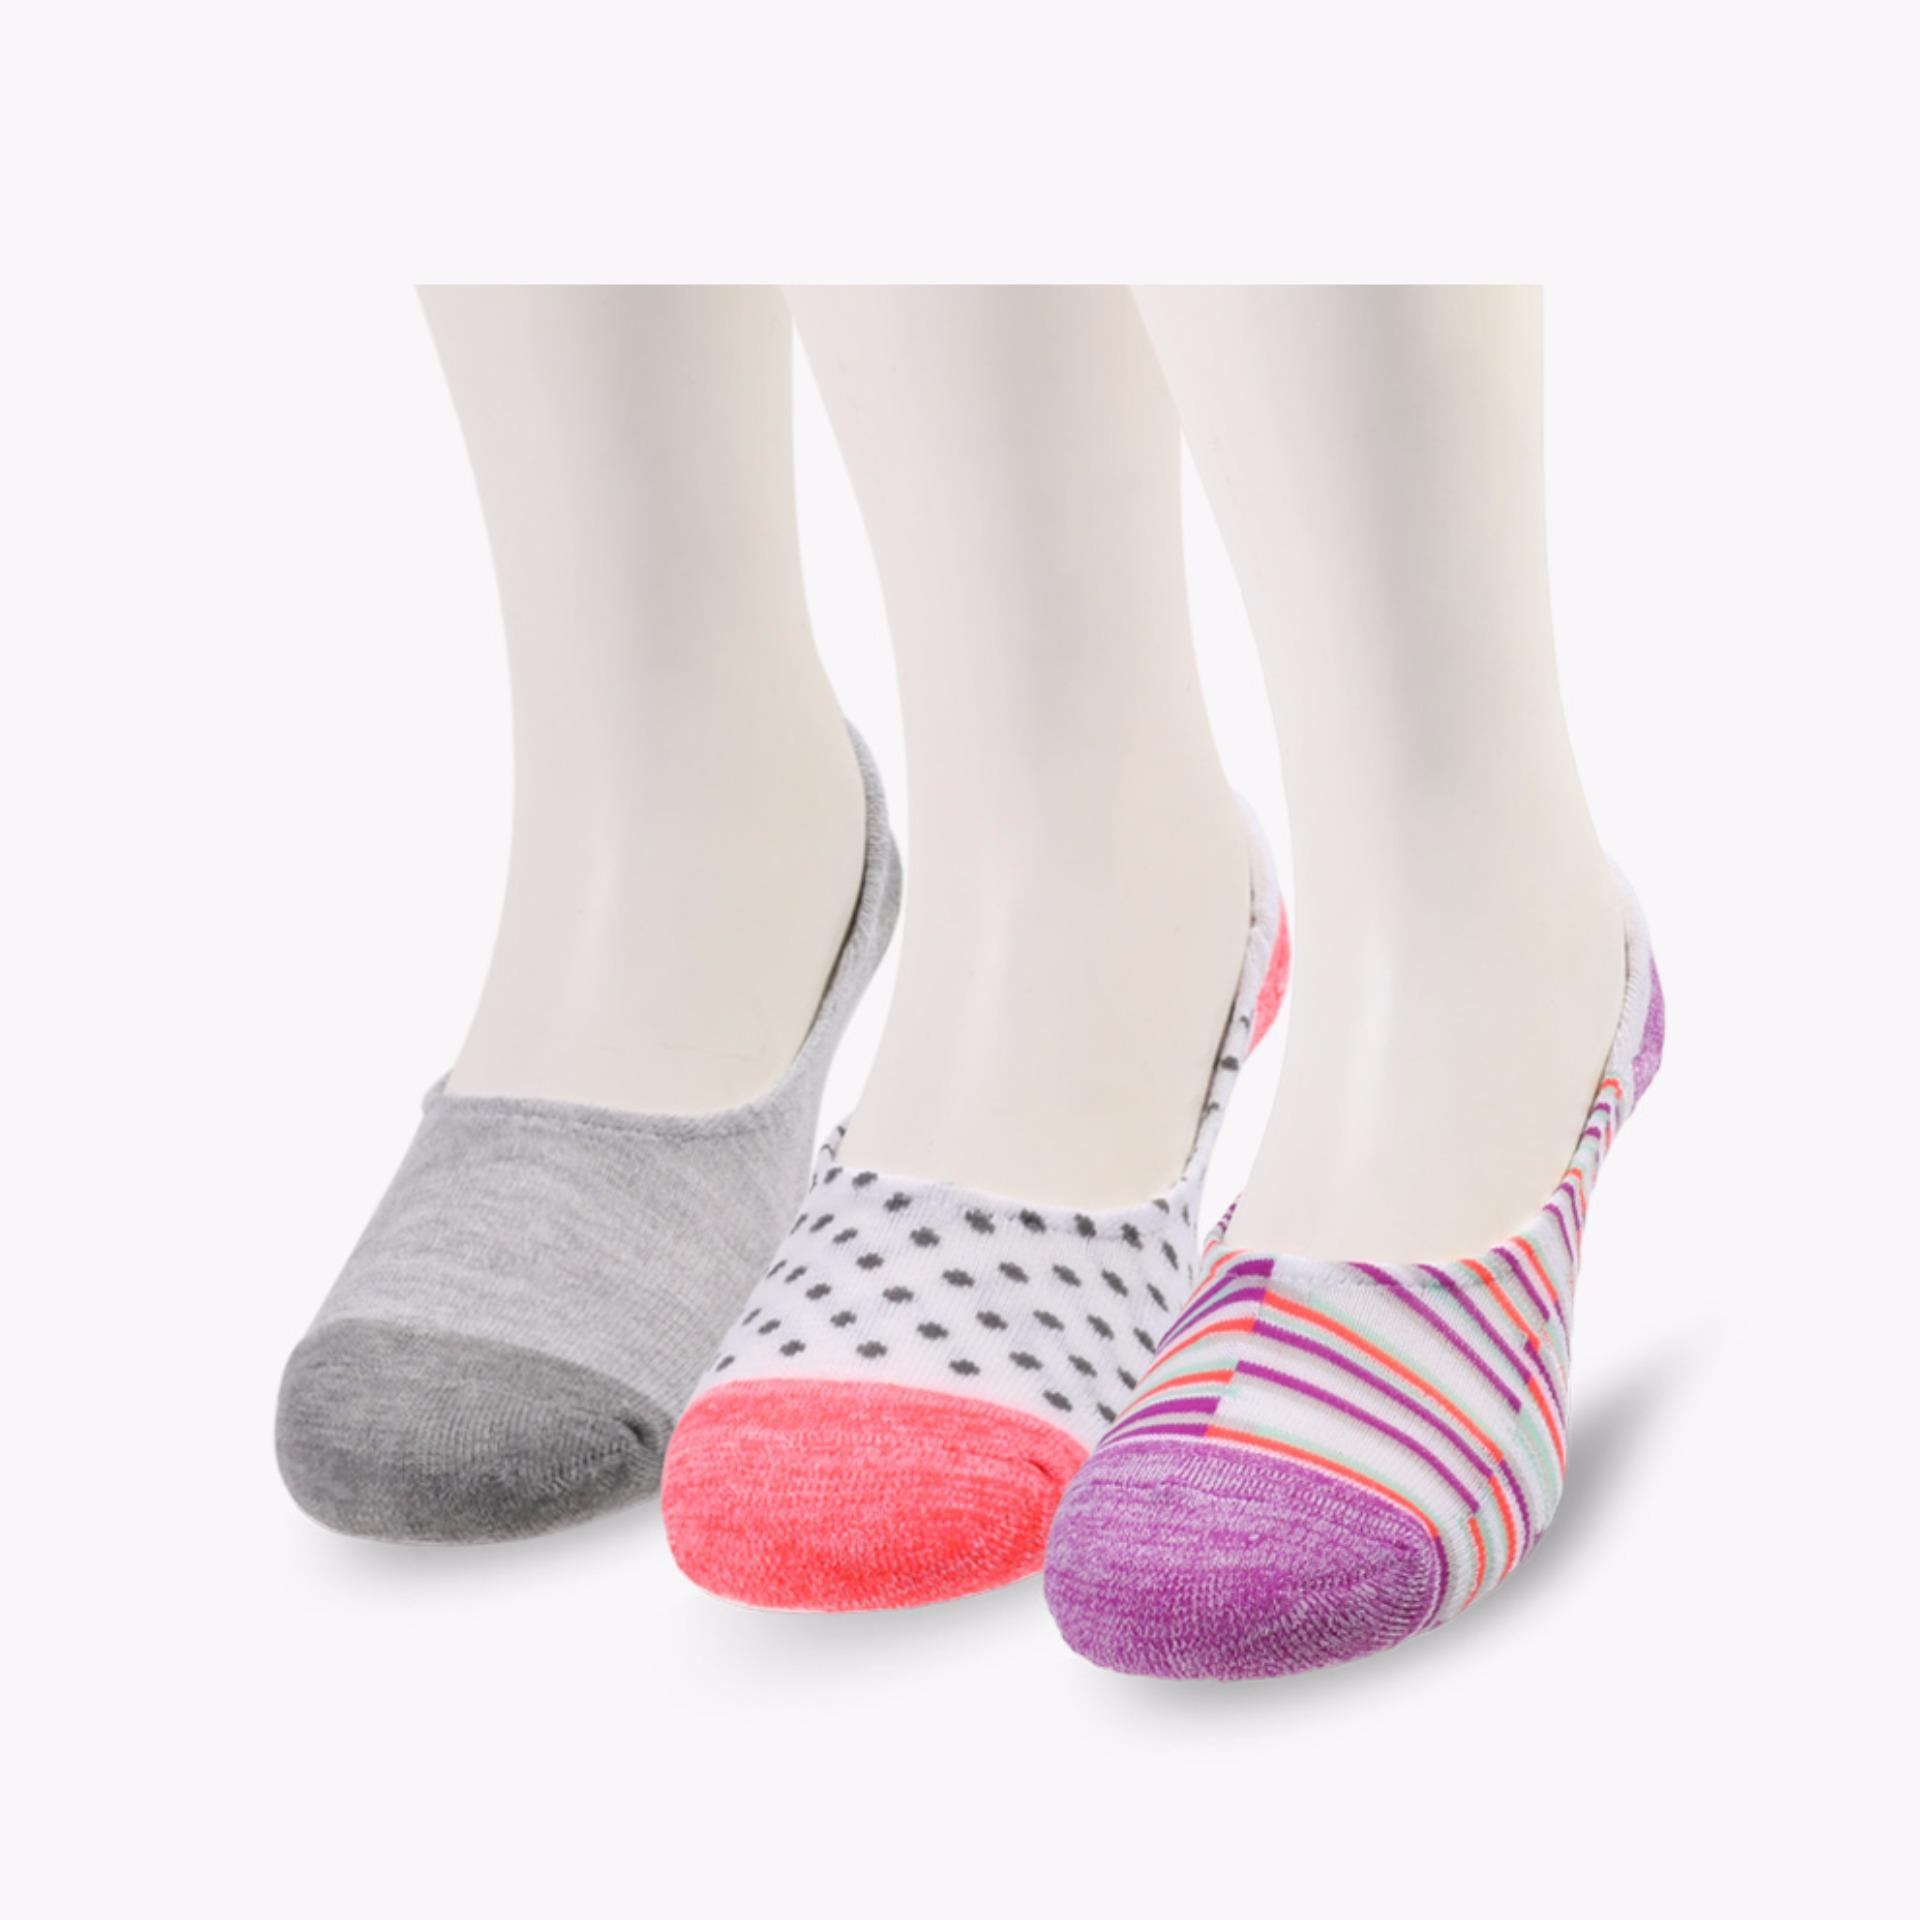 Toko Skechers Relaxed Fit Expected Gomel Women S Socks Multicolor Online